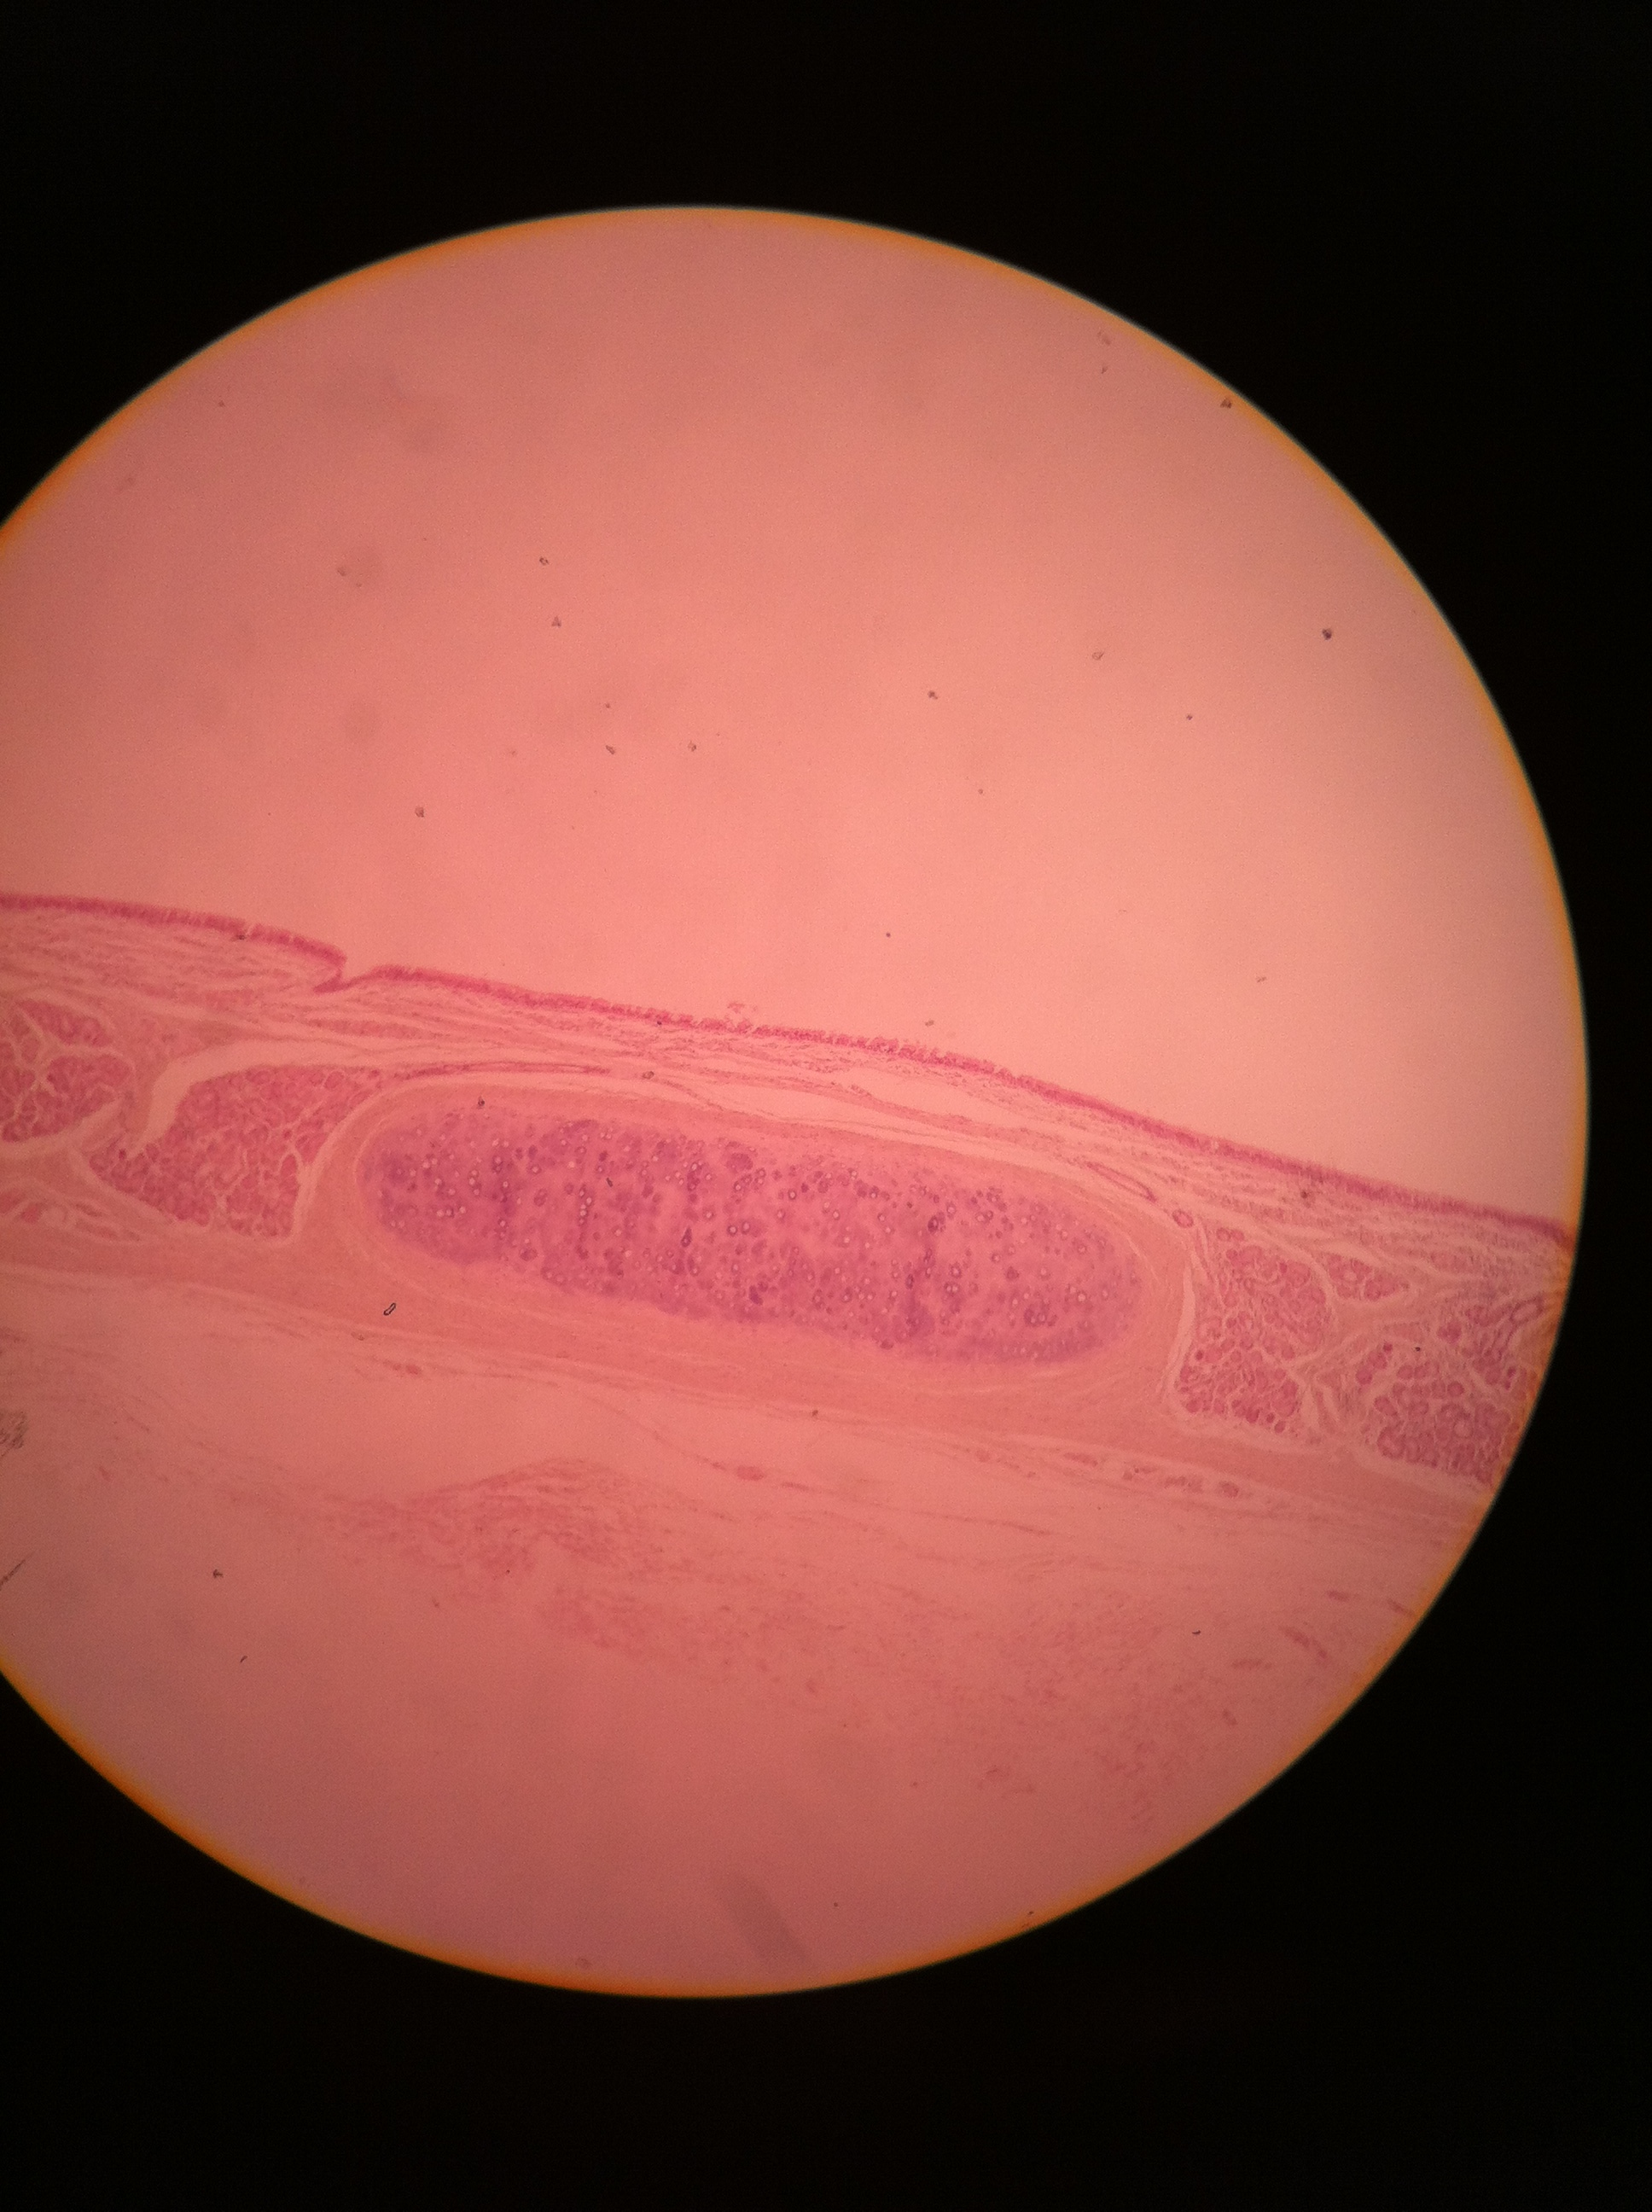 Hyaline cartilage (trachea), 100X